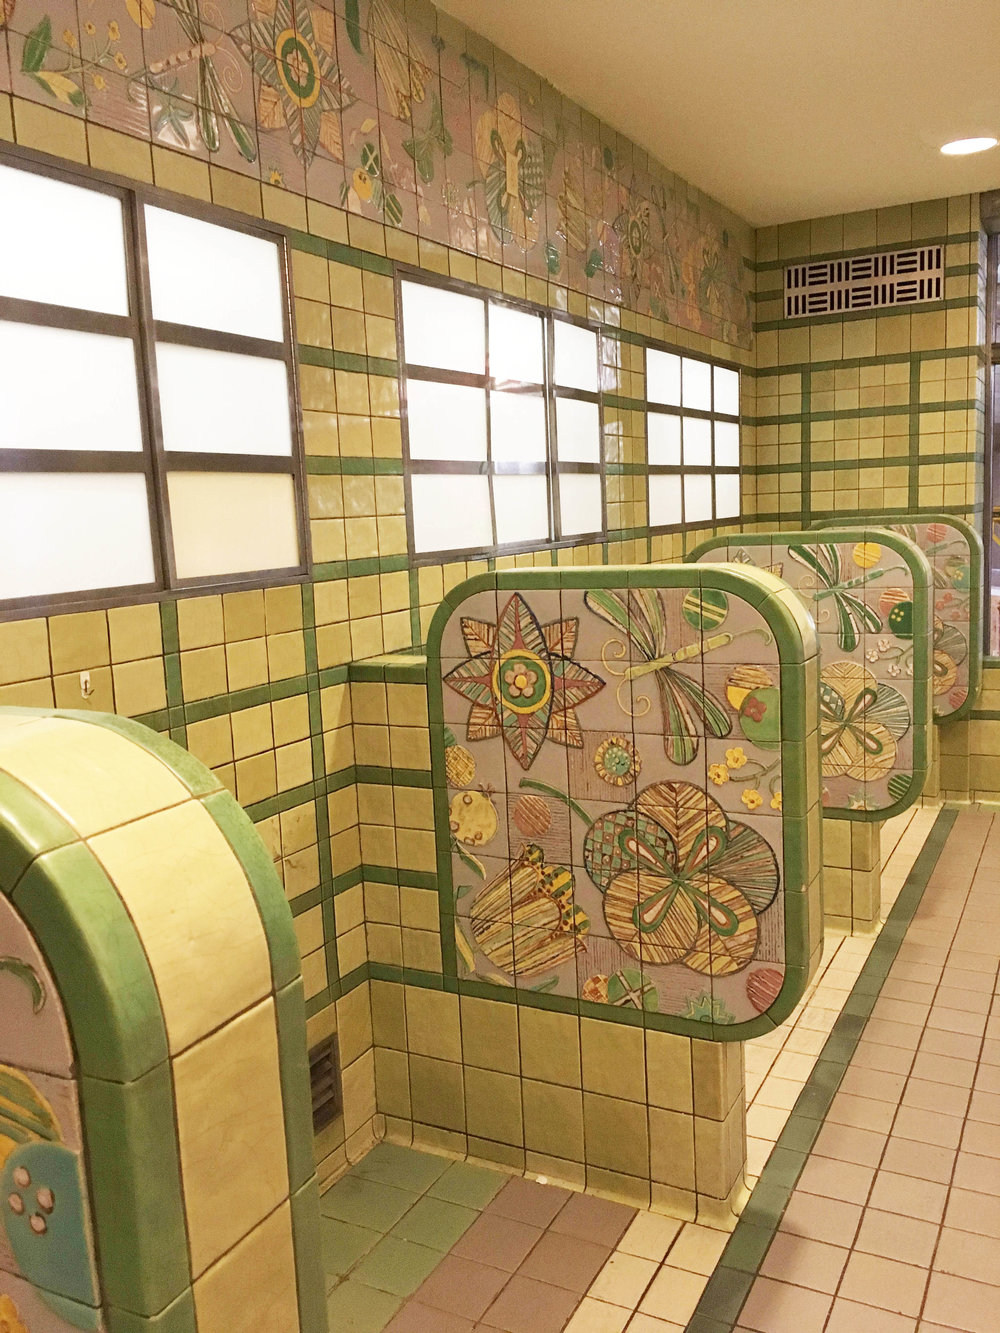 Union Terminal boasts an impressive amount of original Rookwood tile.  Most people know this as the ice cream shop, but it was originally a tea room for the passengers.  We love the bright colors and motifs in these tiles.